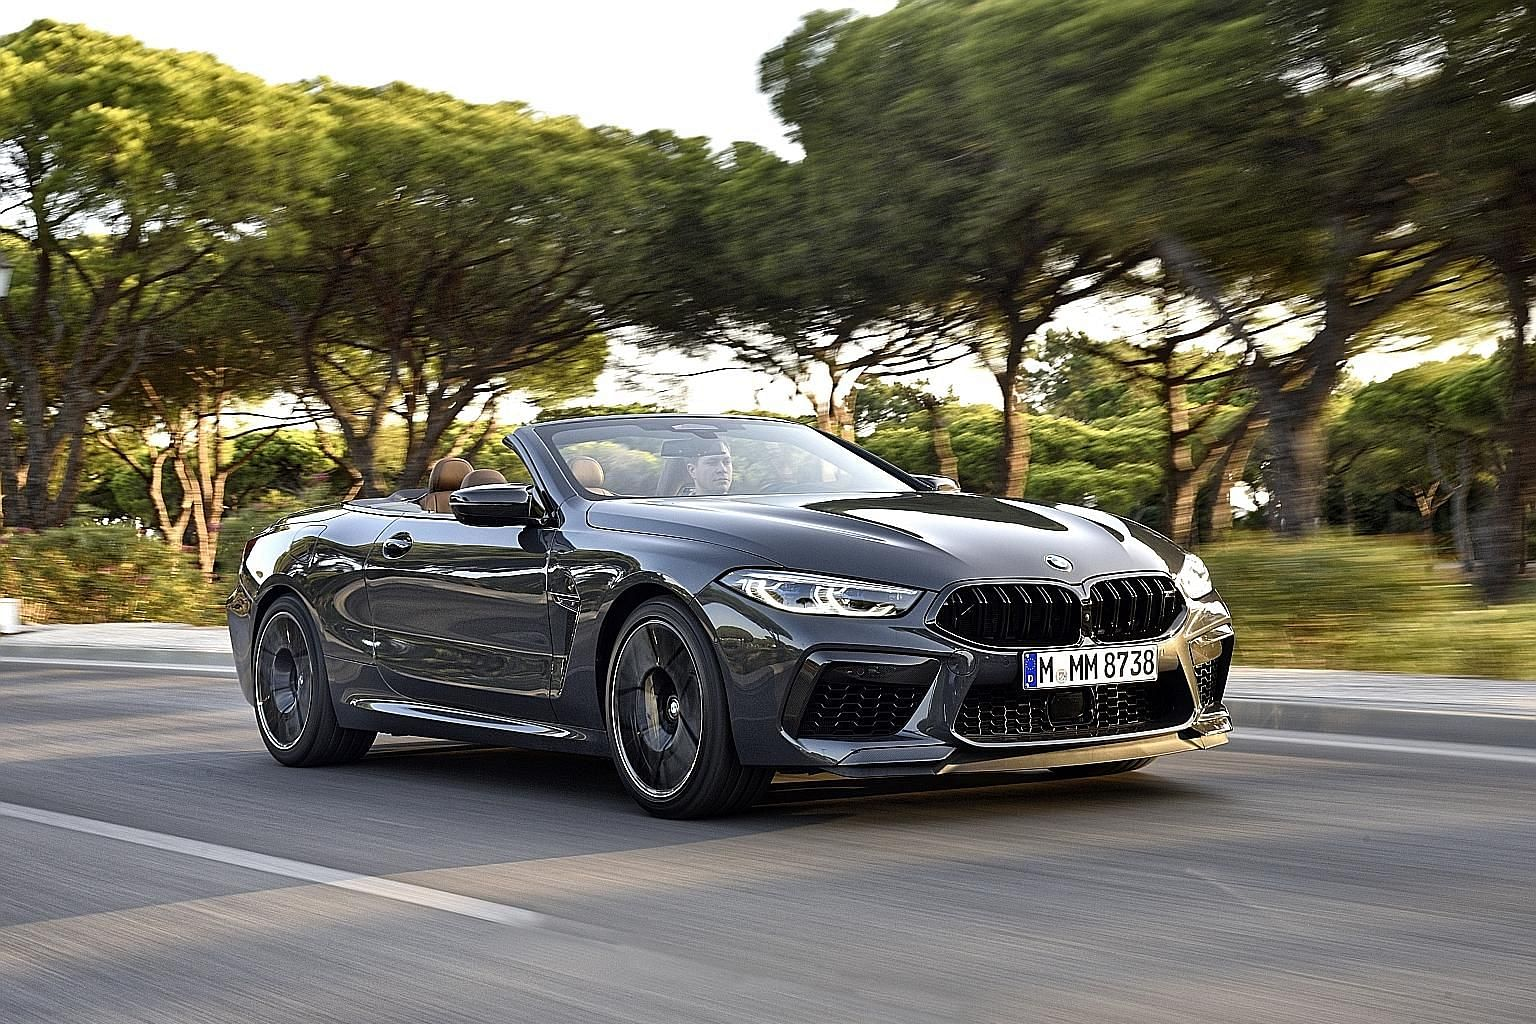 The BMW M8 Competition Convertible (above) sprints to 100kmh in 3.3 seconds, while the Coupe does it in 3.2 seconds.